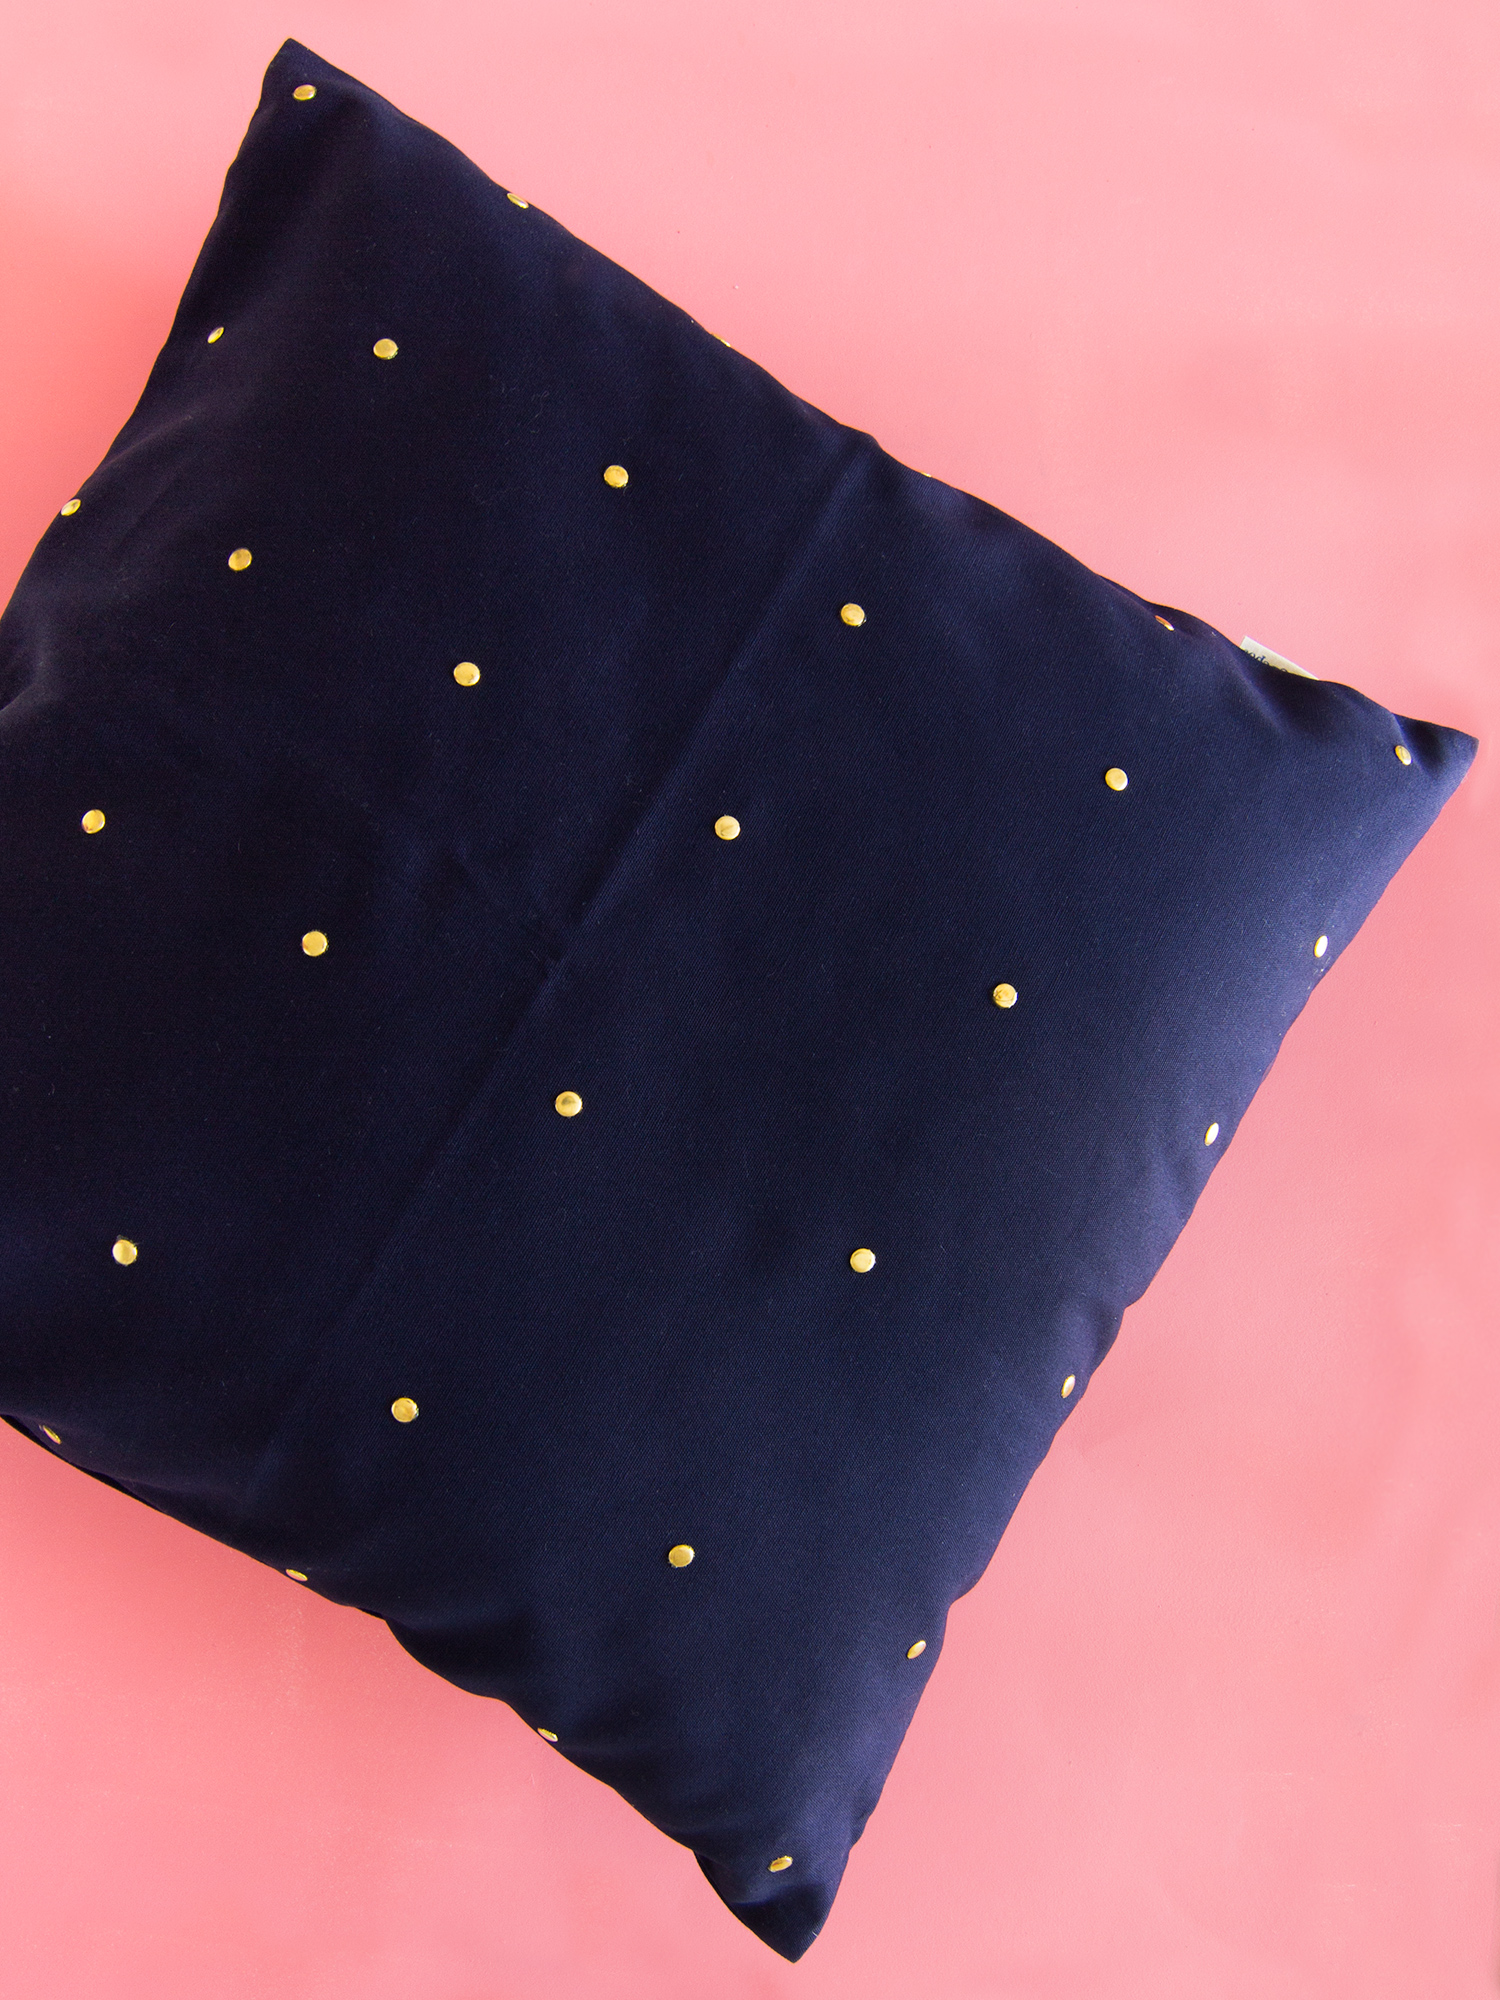 Give a plain pillow cover an update in minutes! (Click through for the step by step video tutorial)